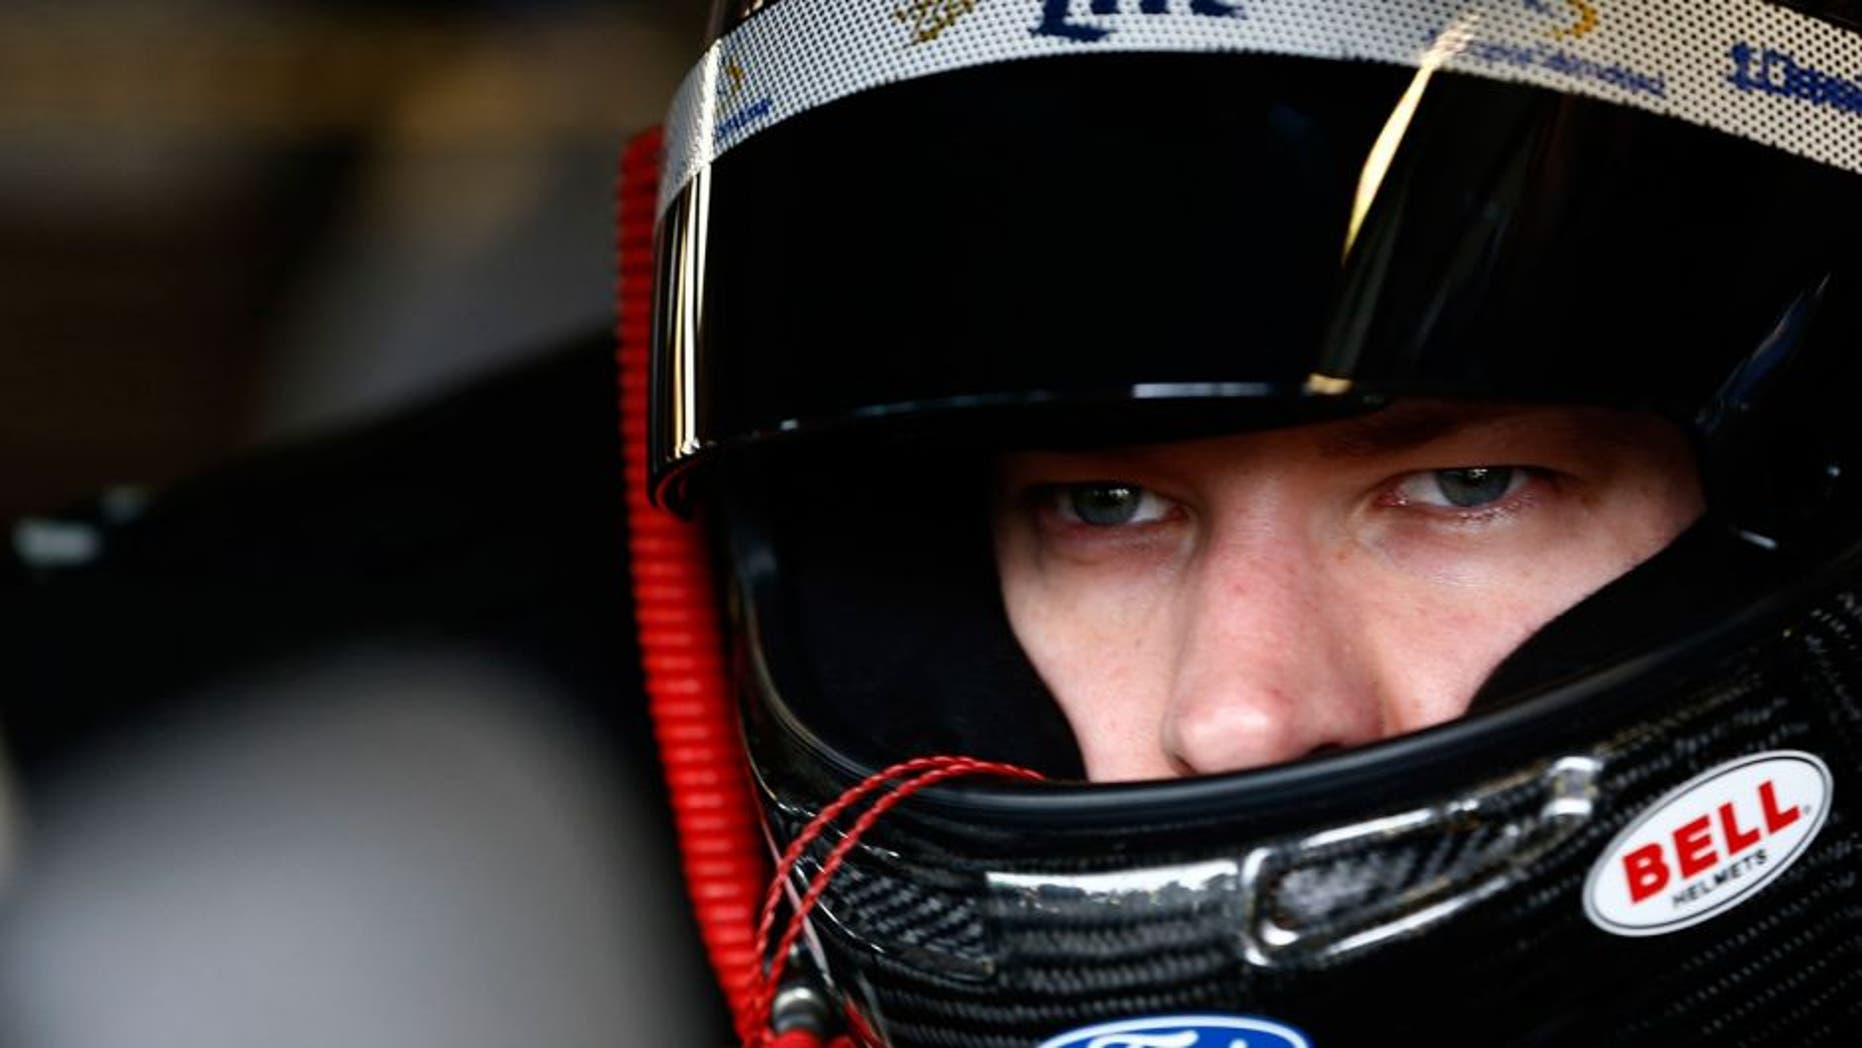 JOLIET, IL - SEPTEMBER 18: Brad Keselowski, driver of the #2 Miller Lite Ford, sits in his car during practice for the NASCAR Sprint Cup Series myAFibRisk.com 400 at Chicagoland Speedway on September 18, 2015 in Joliet, Illinois. (Photo by Jeff Zelevansky/NASCAR via Getty Images)